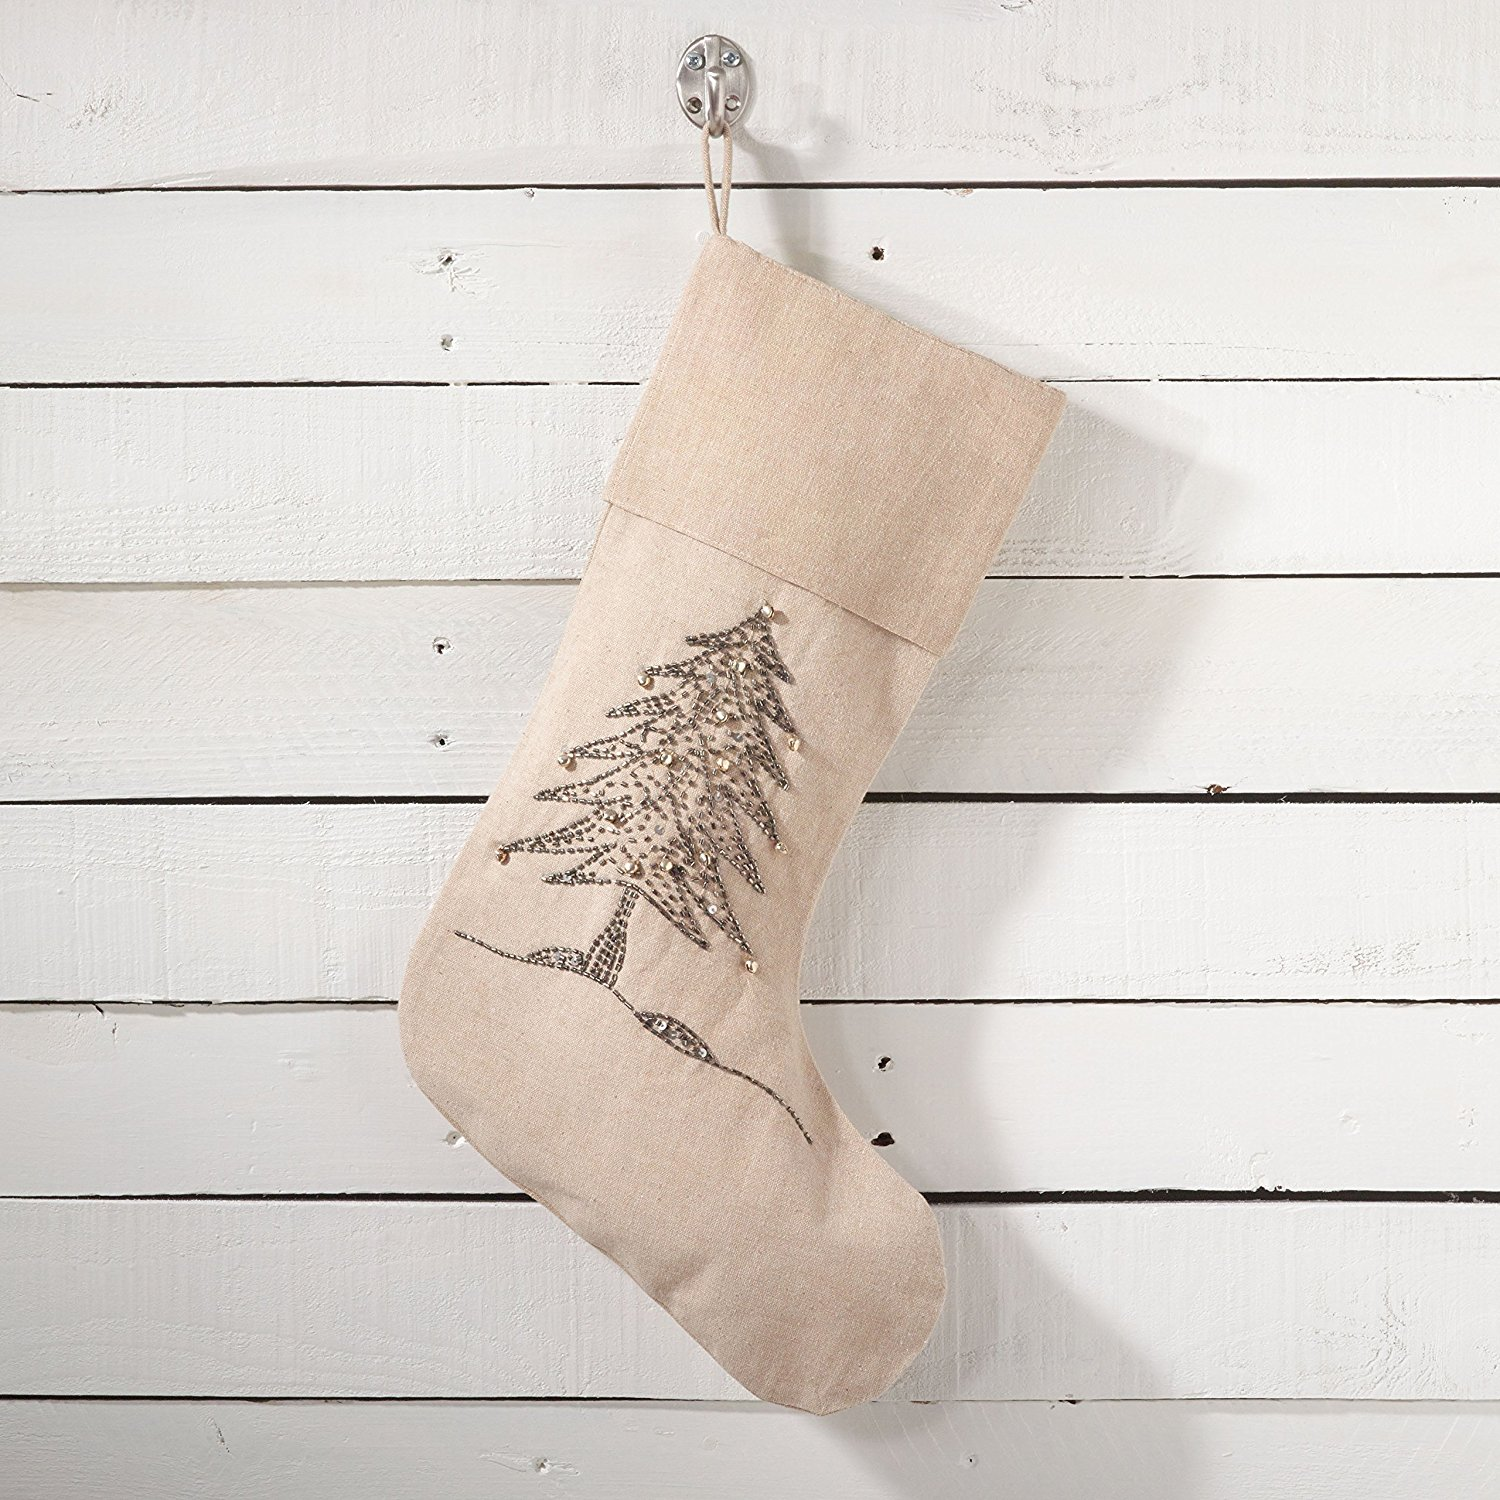 Cheap Beaded Stocking, find Beaded Stocking deals on line at Alibaba.com